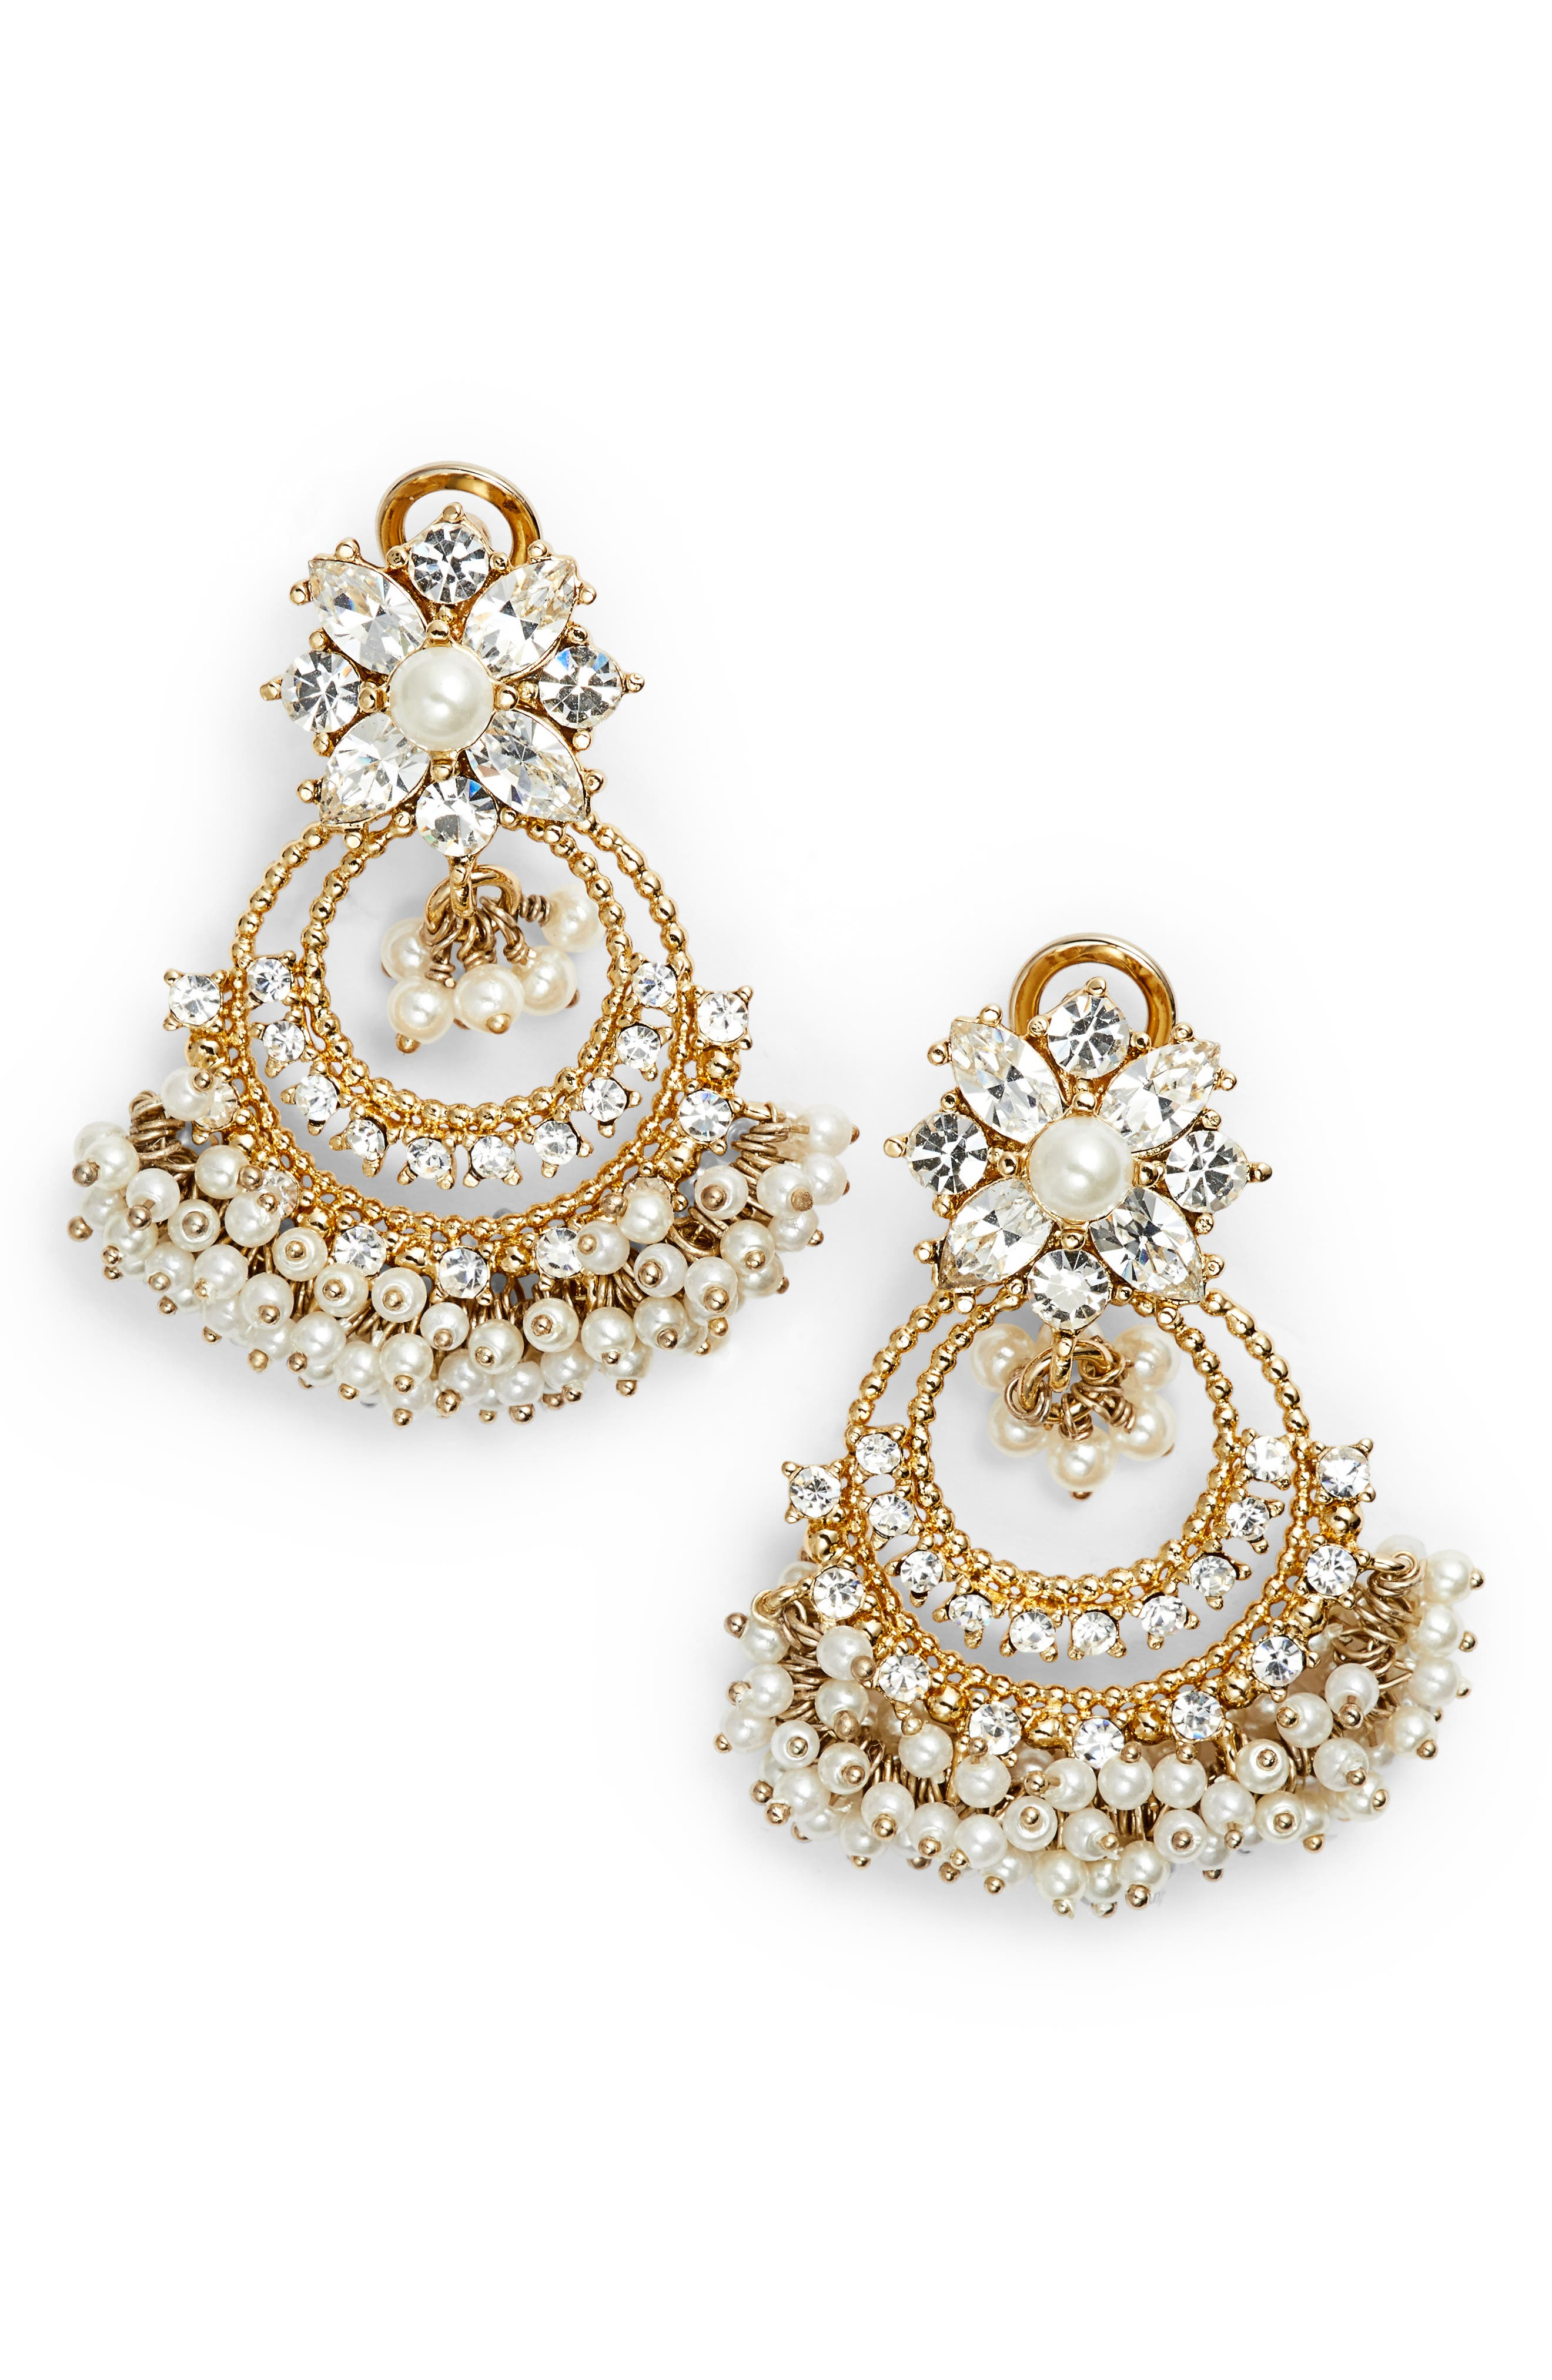 Crystal Chandelier Drop Earrings,                             Main thumbnail 1, color,                             Gold/ White/ Cry